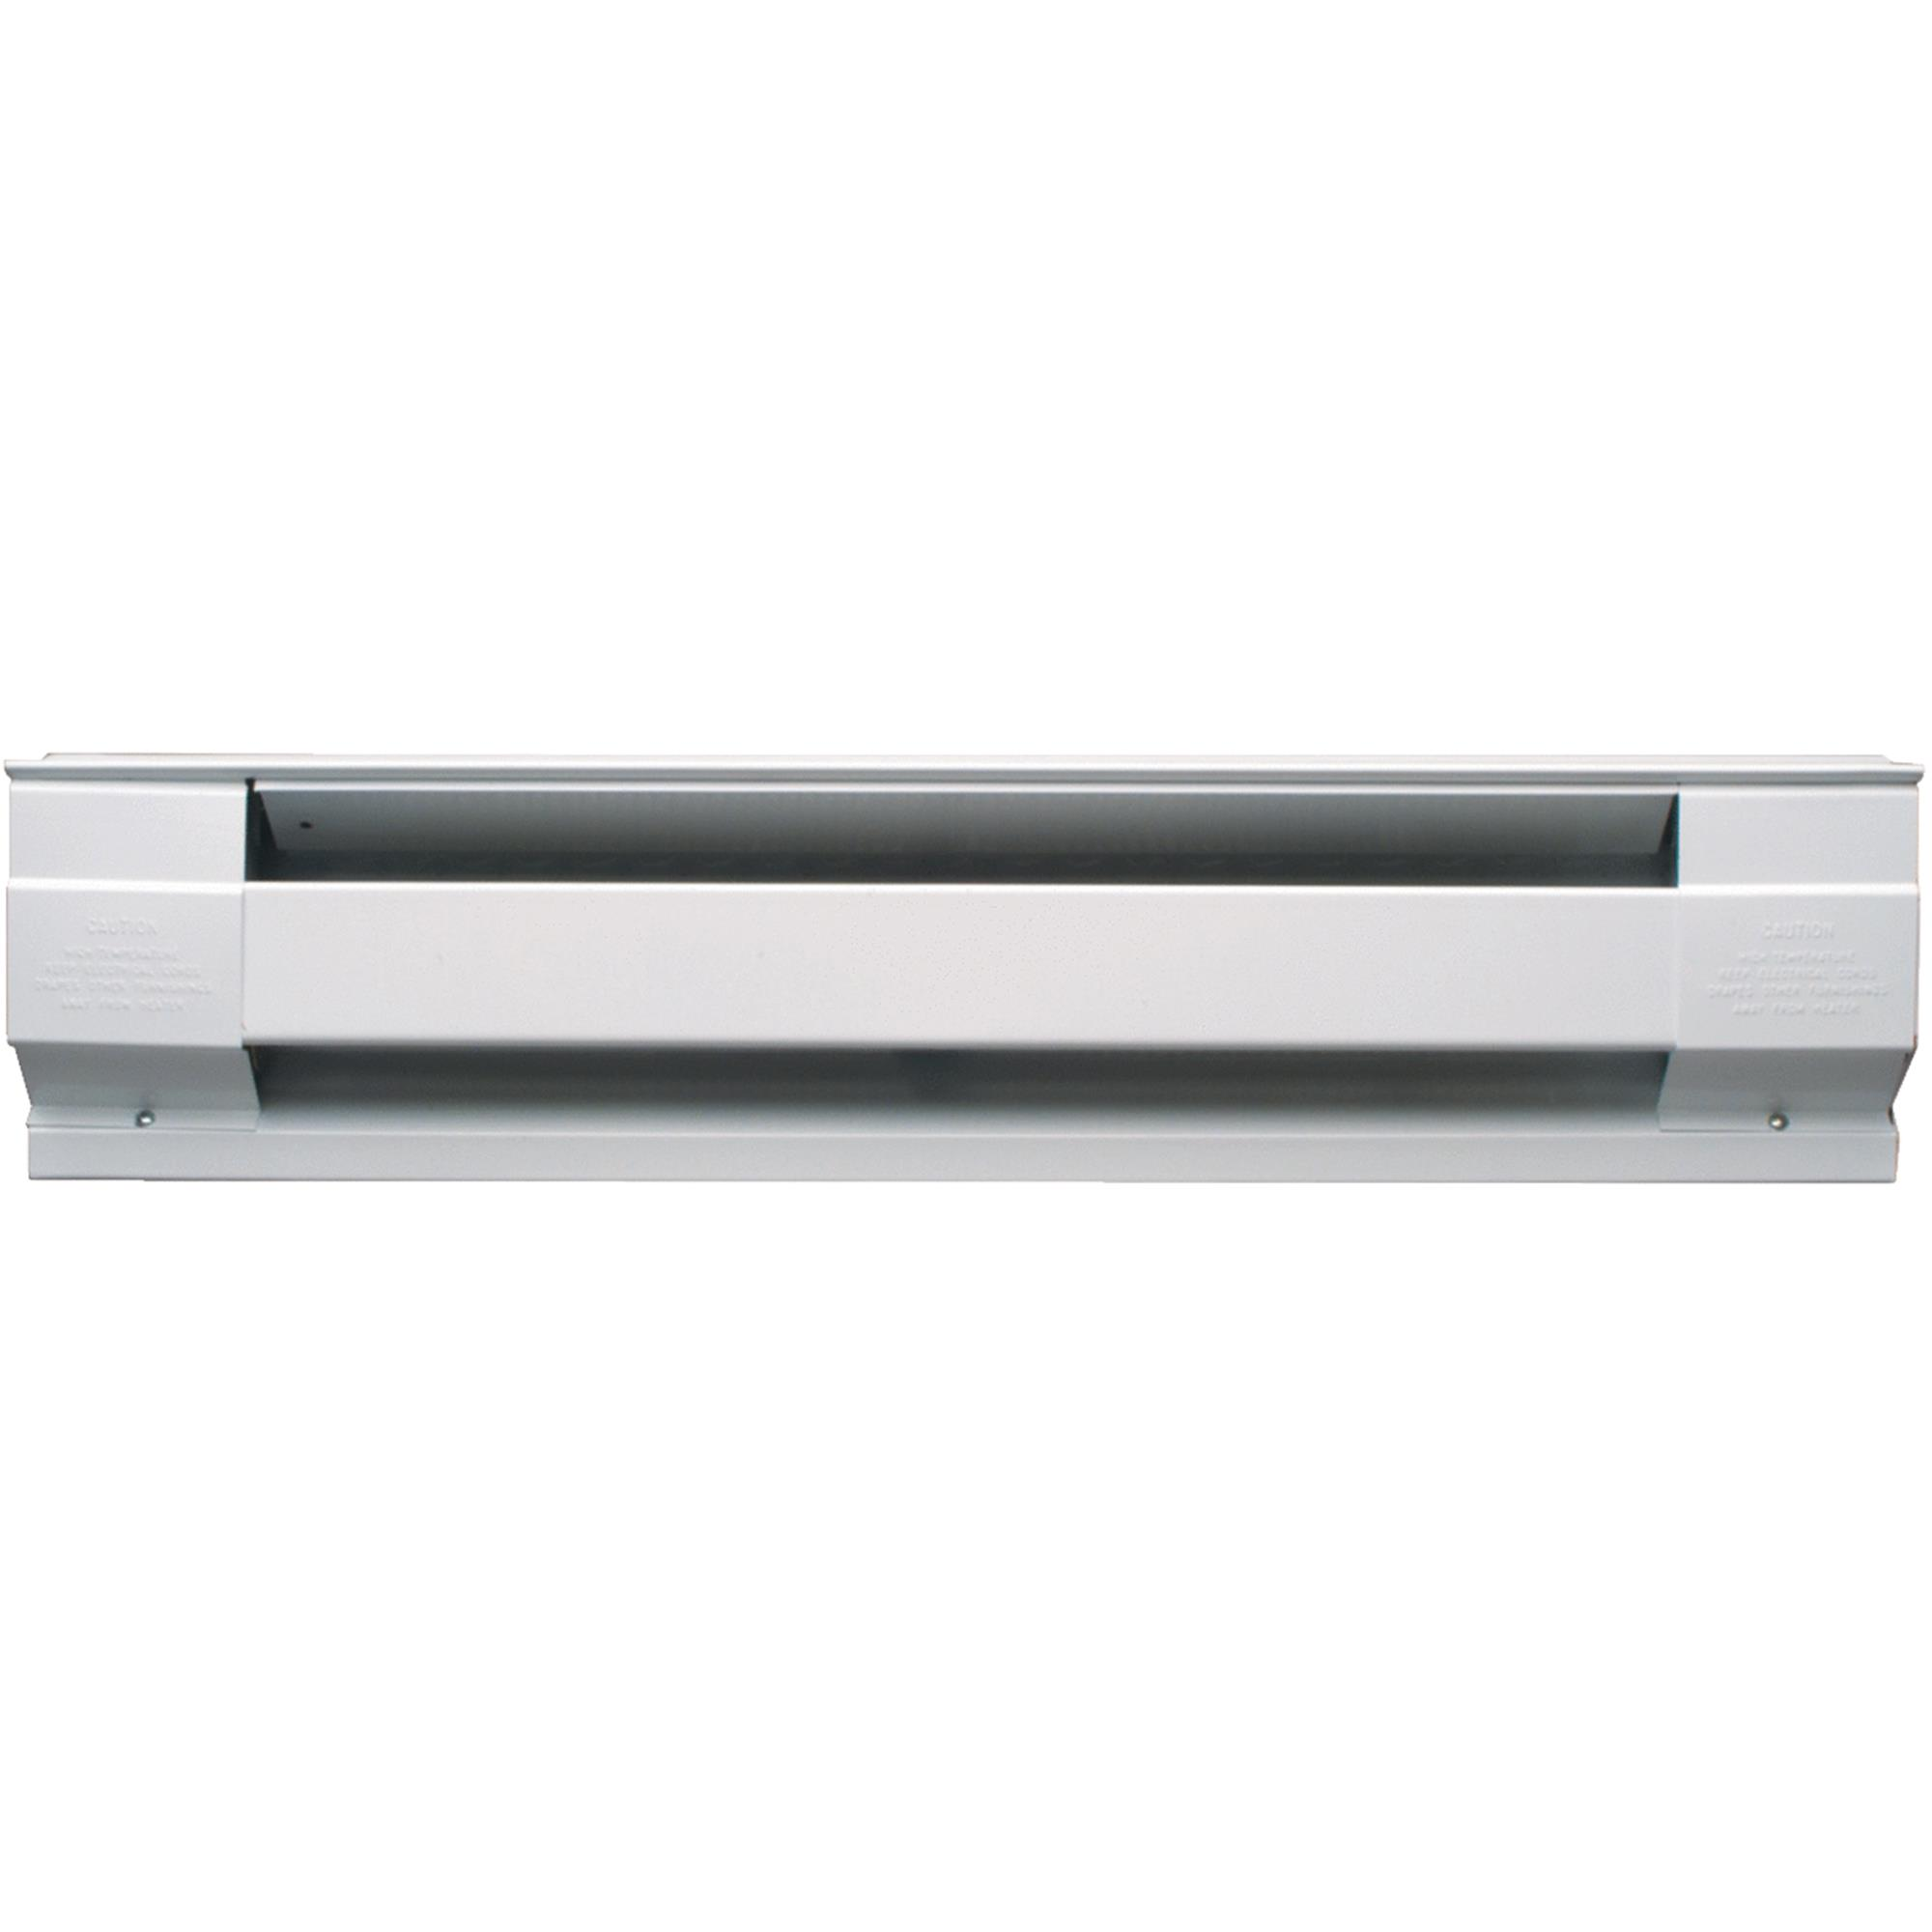 Cadet Electric Baseboard Heater by Electric Heaters